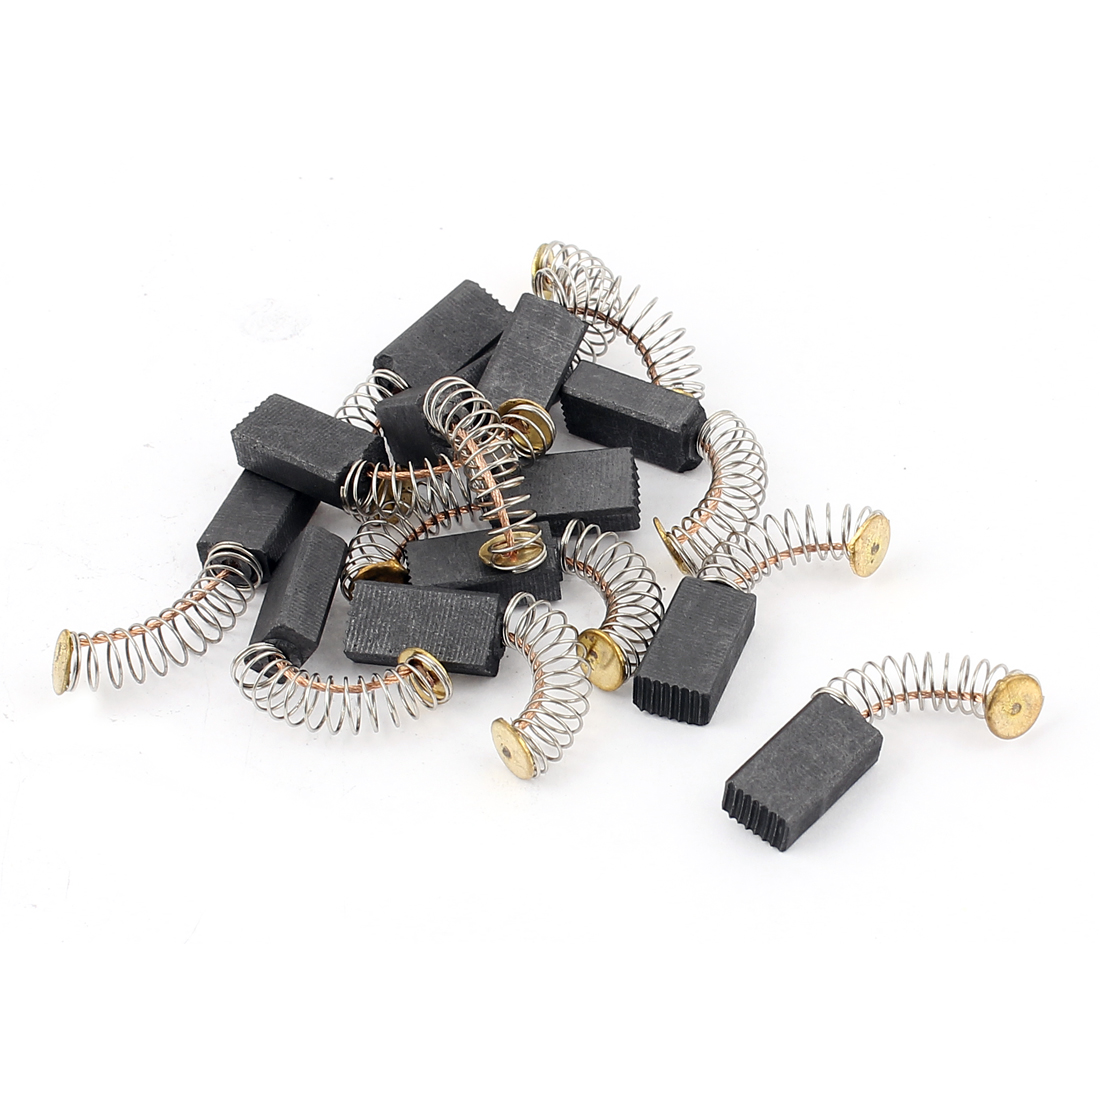 14 Pcs Carbon Brushes 15mm x 8mm x 5mm for Generic Electric Motor